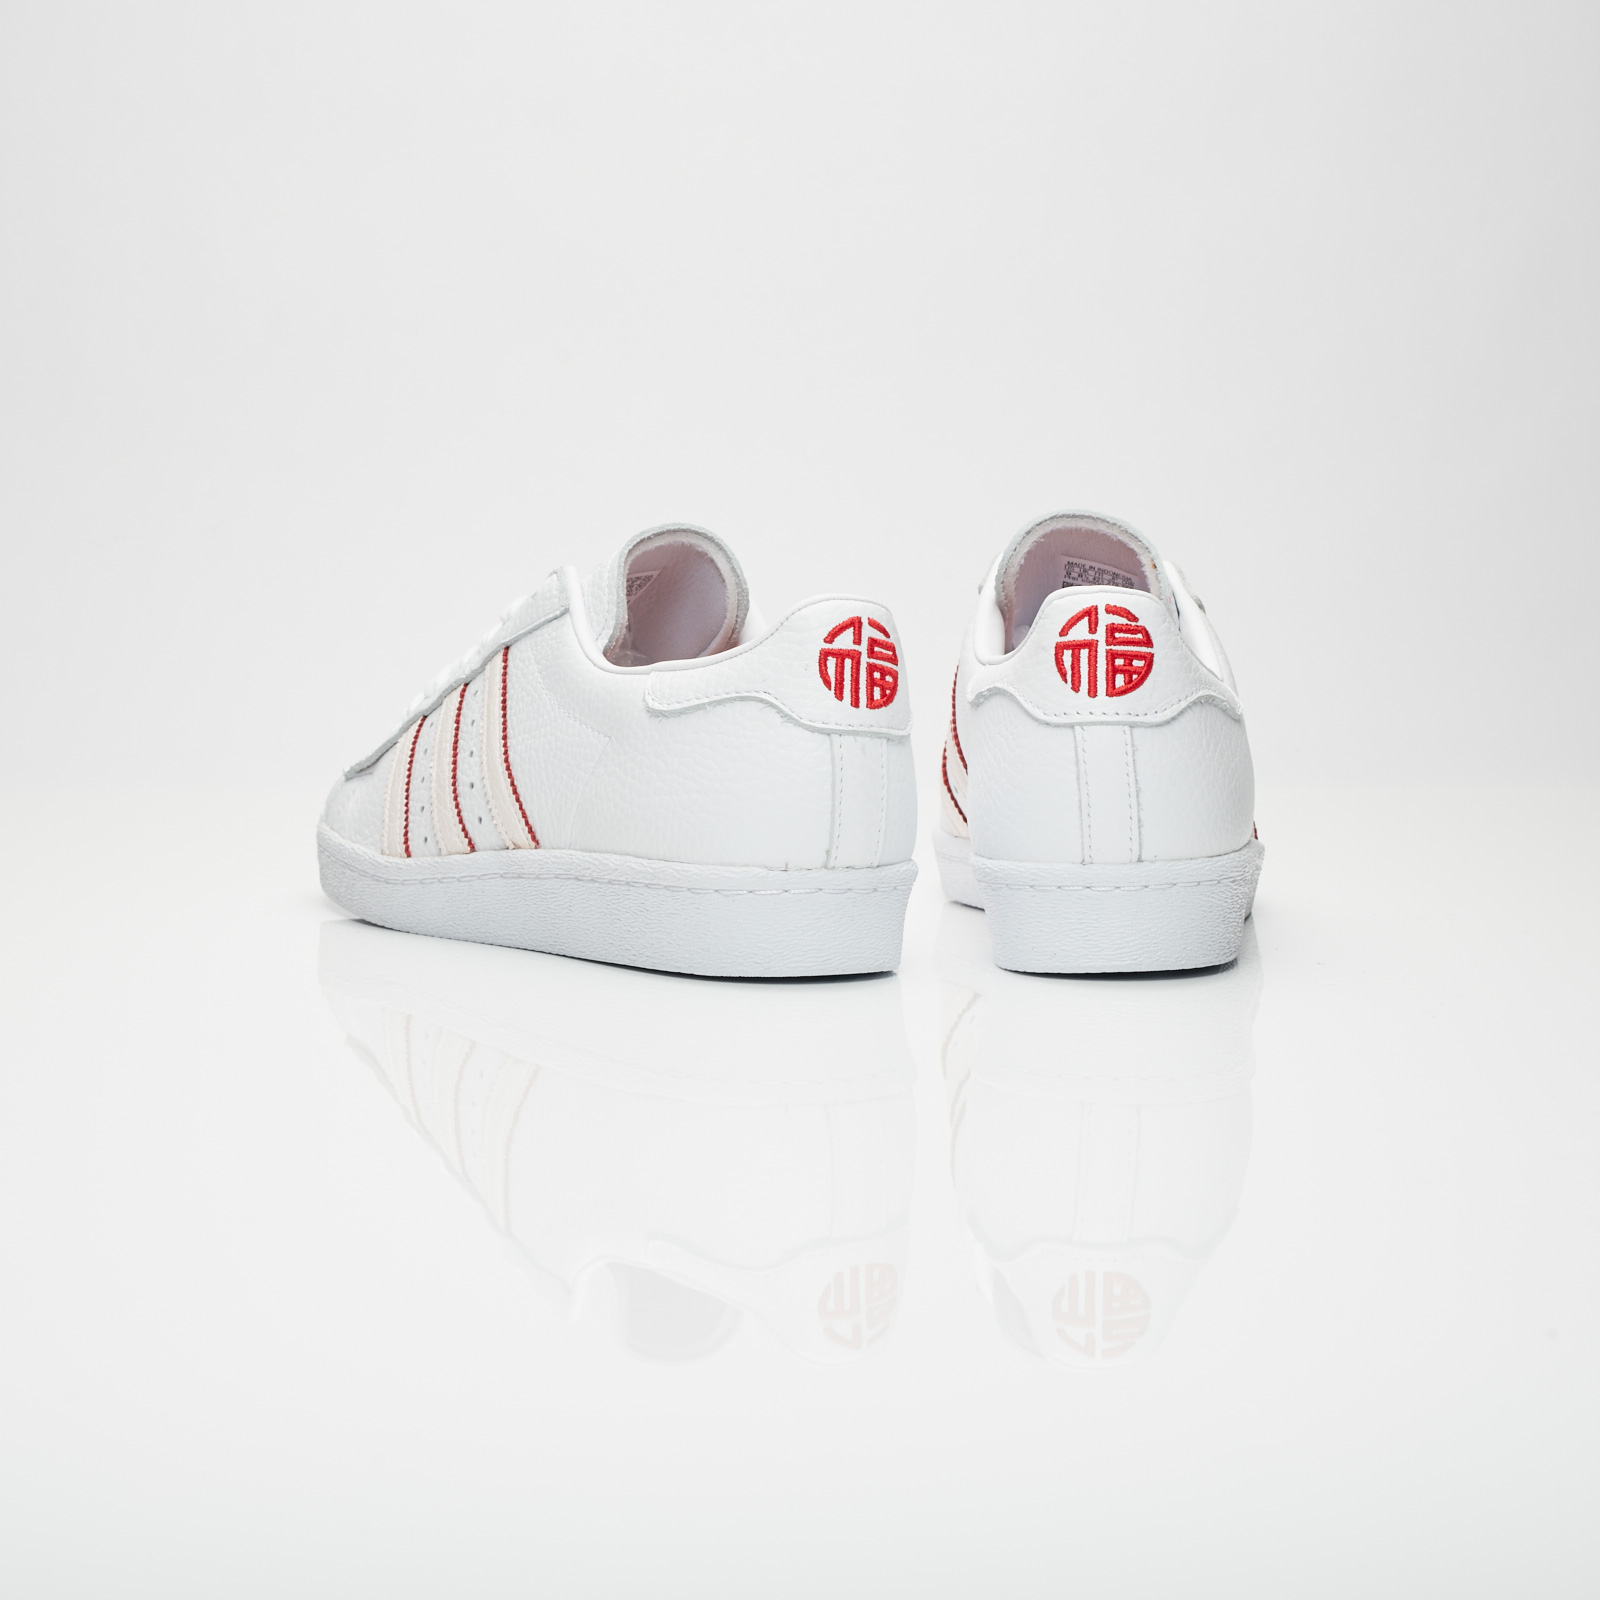 wholesale dealer ebe1d c6f1e adidas Superstar 80s Chinese New Year - Db2569 ...